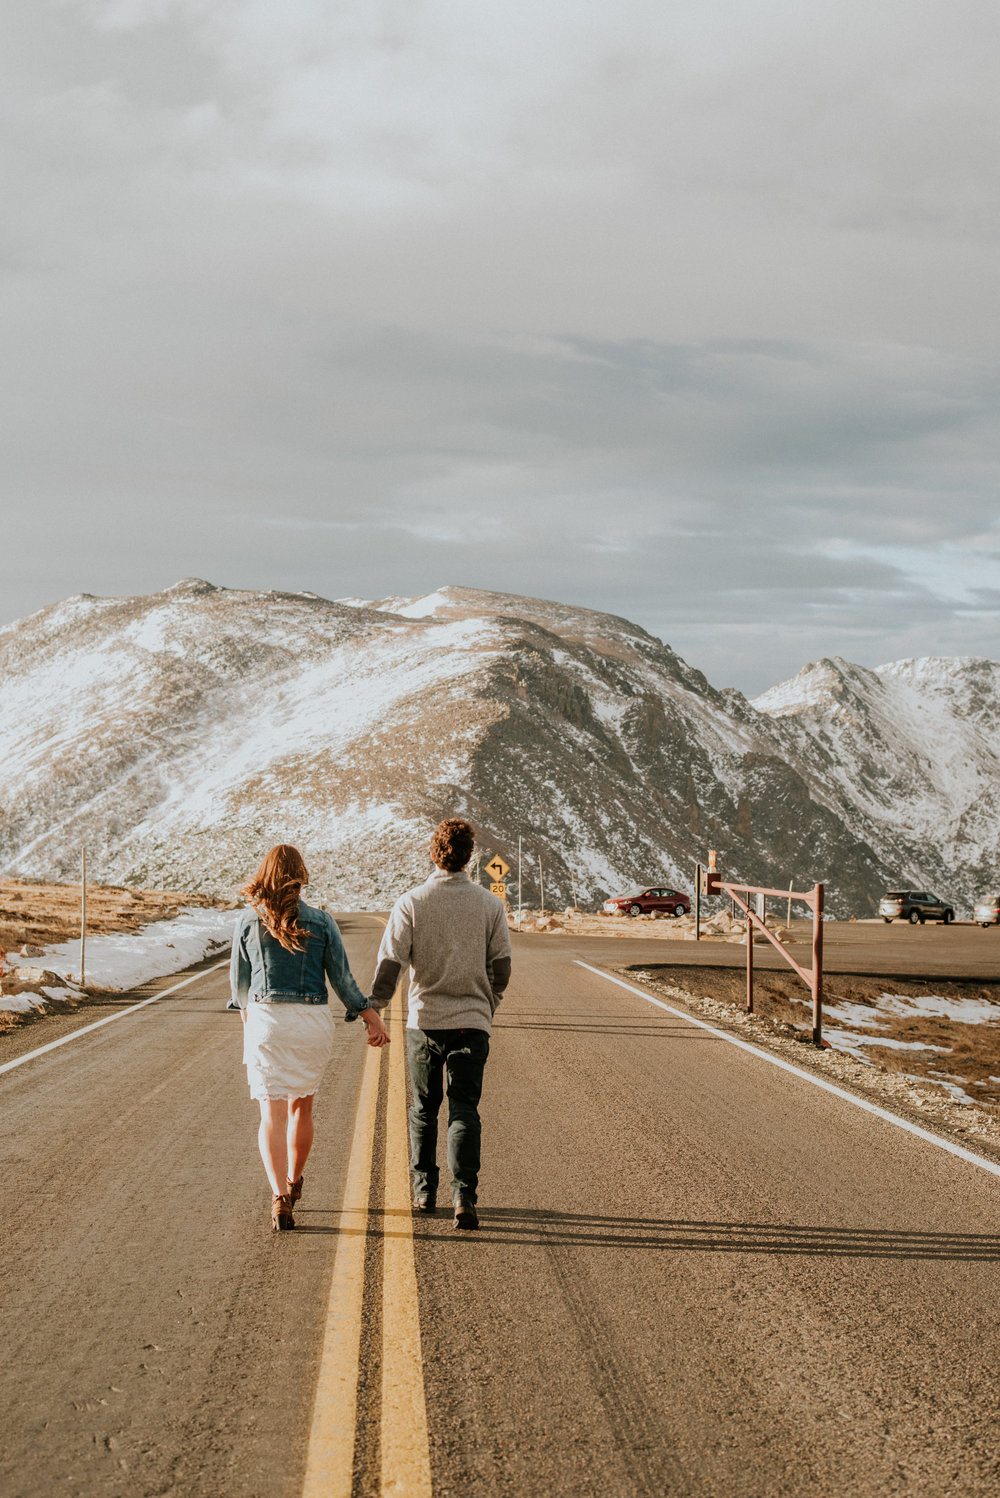 Trail Ridge Road Sunrise Snowy engagement session-26.jpg